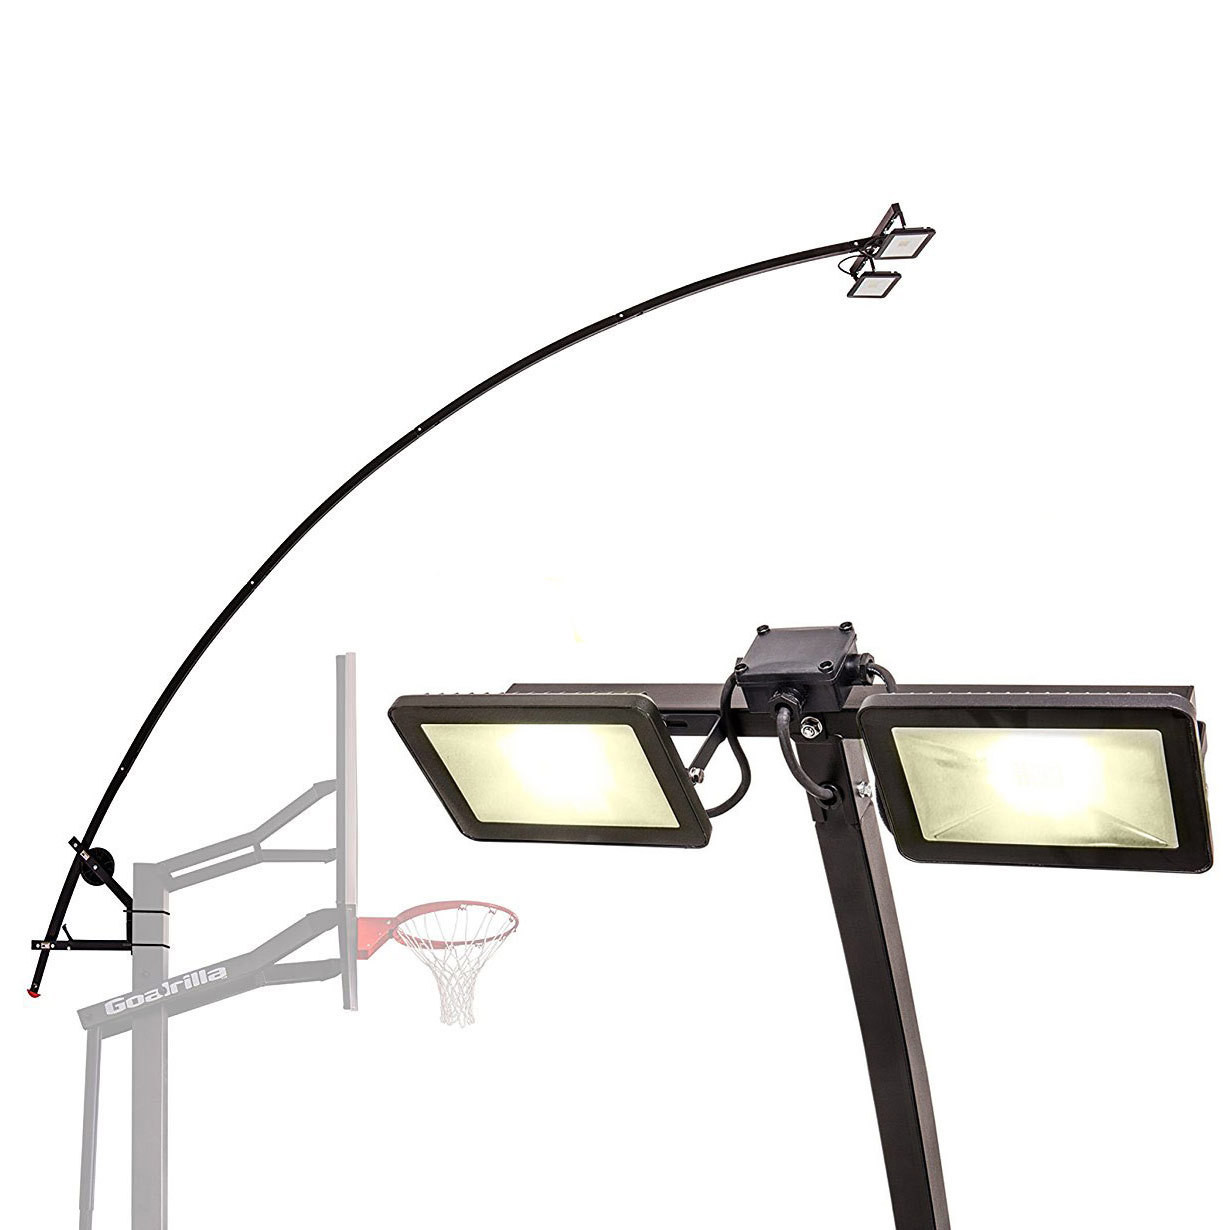 Goalrilla Deluxe LED Basketball Hoop Light